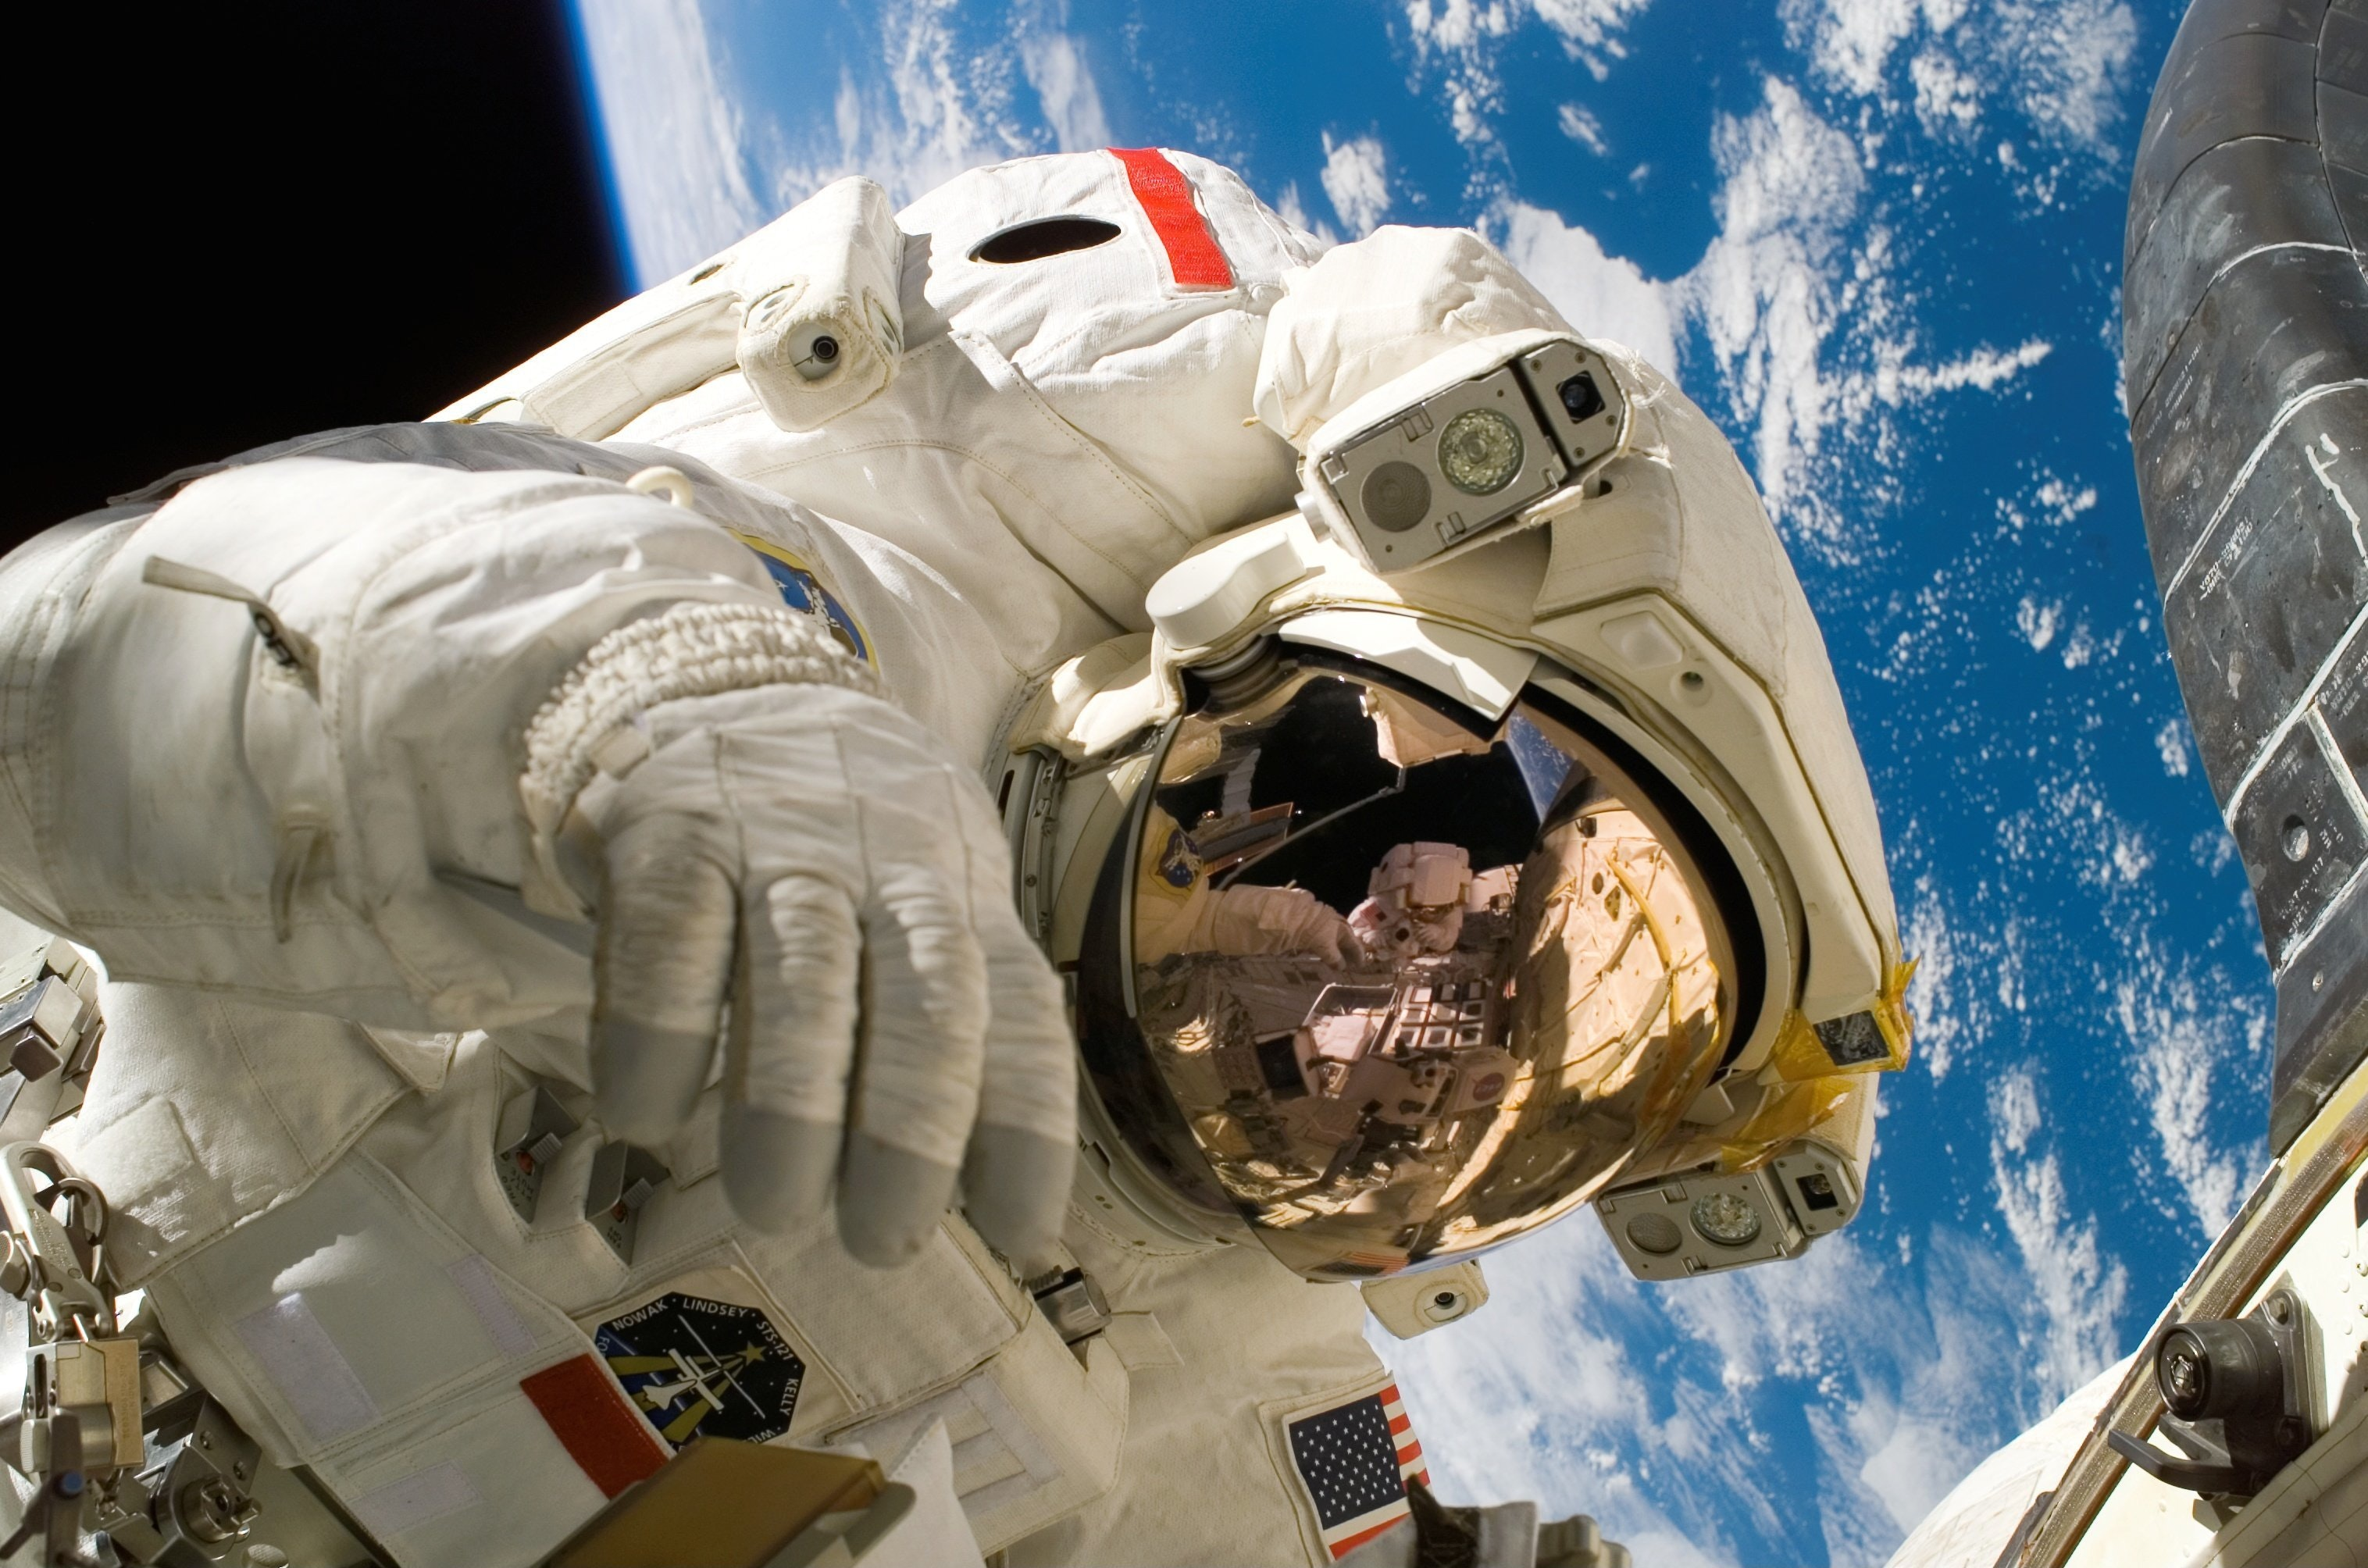 American astronaut in space, Research, Working, Universe, United states of america, HQ Photo